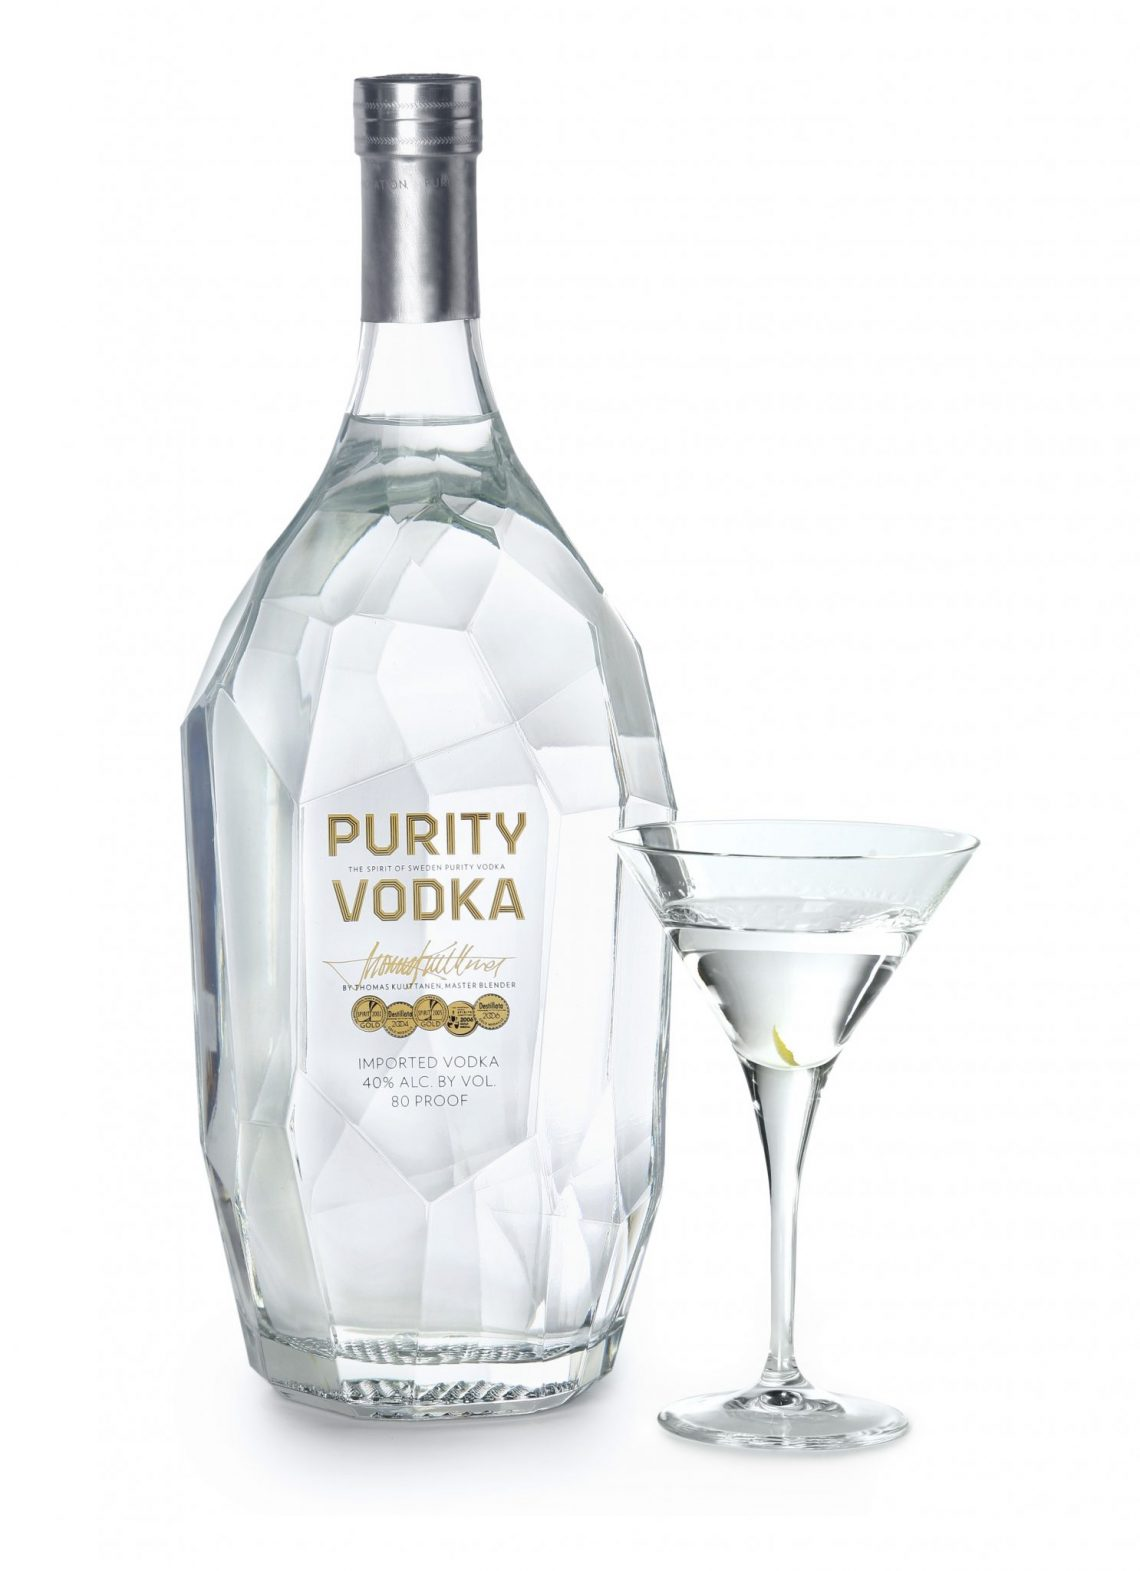 images off Purity Chip 016 Discover: Purity Vodka, an Ultra-Premium Swedish Brand, Redefines Our Understanding of Vodka - EAT LOVE SAVOR International luxury lifestyle magazine and bookazines